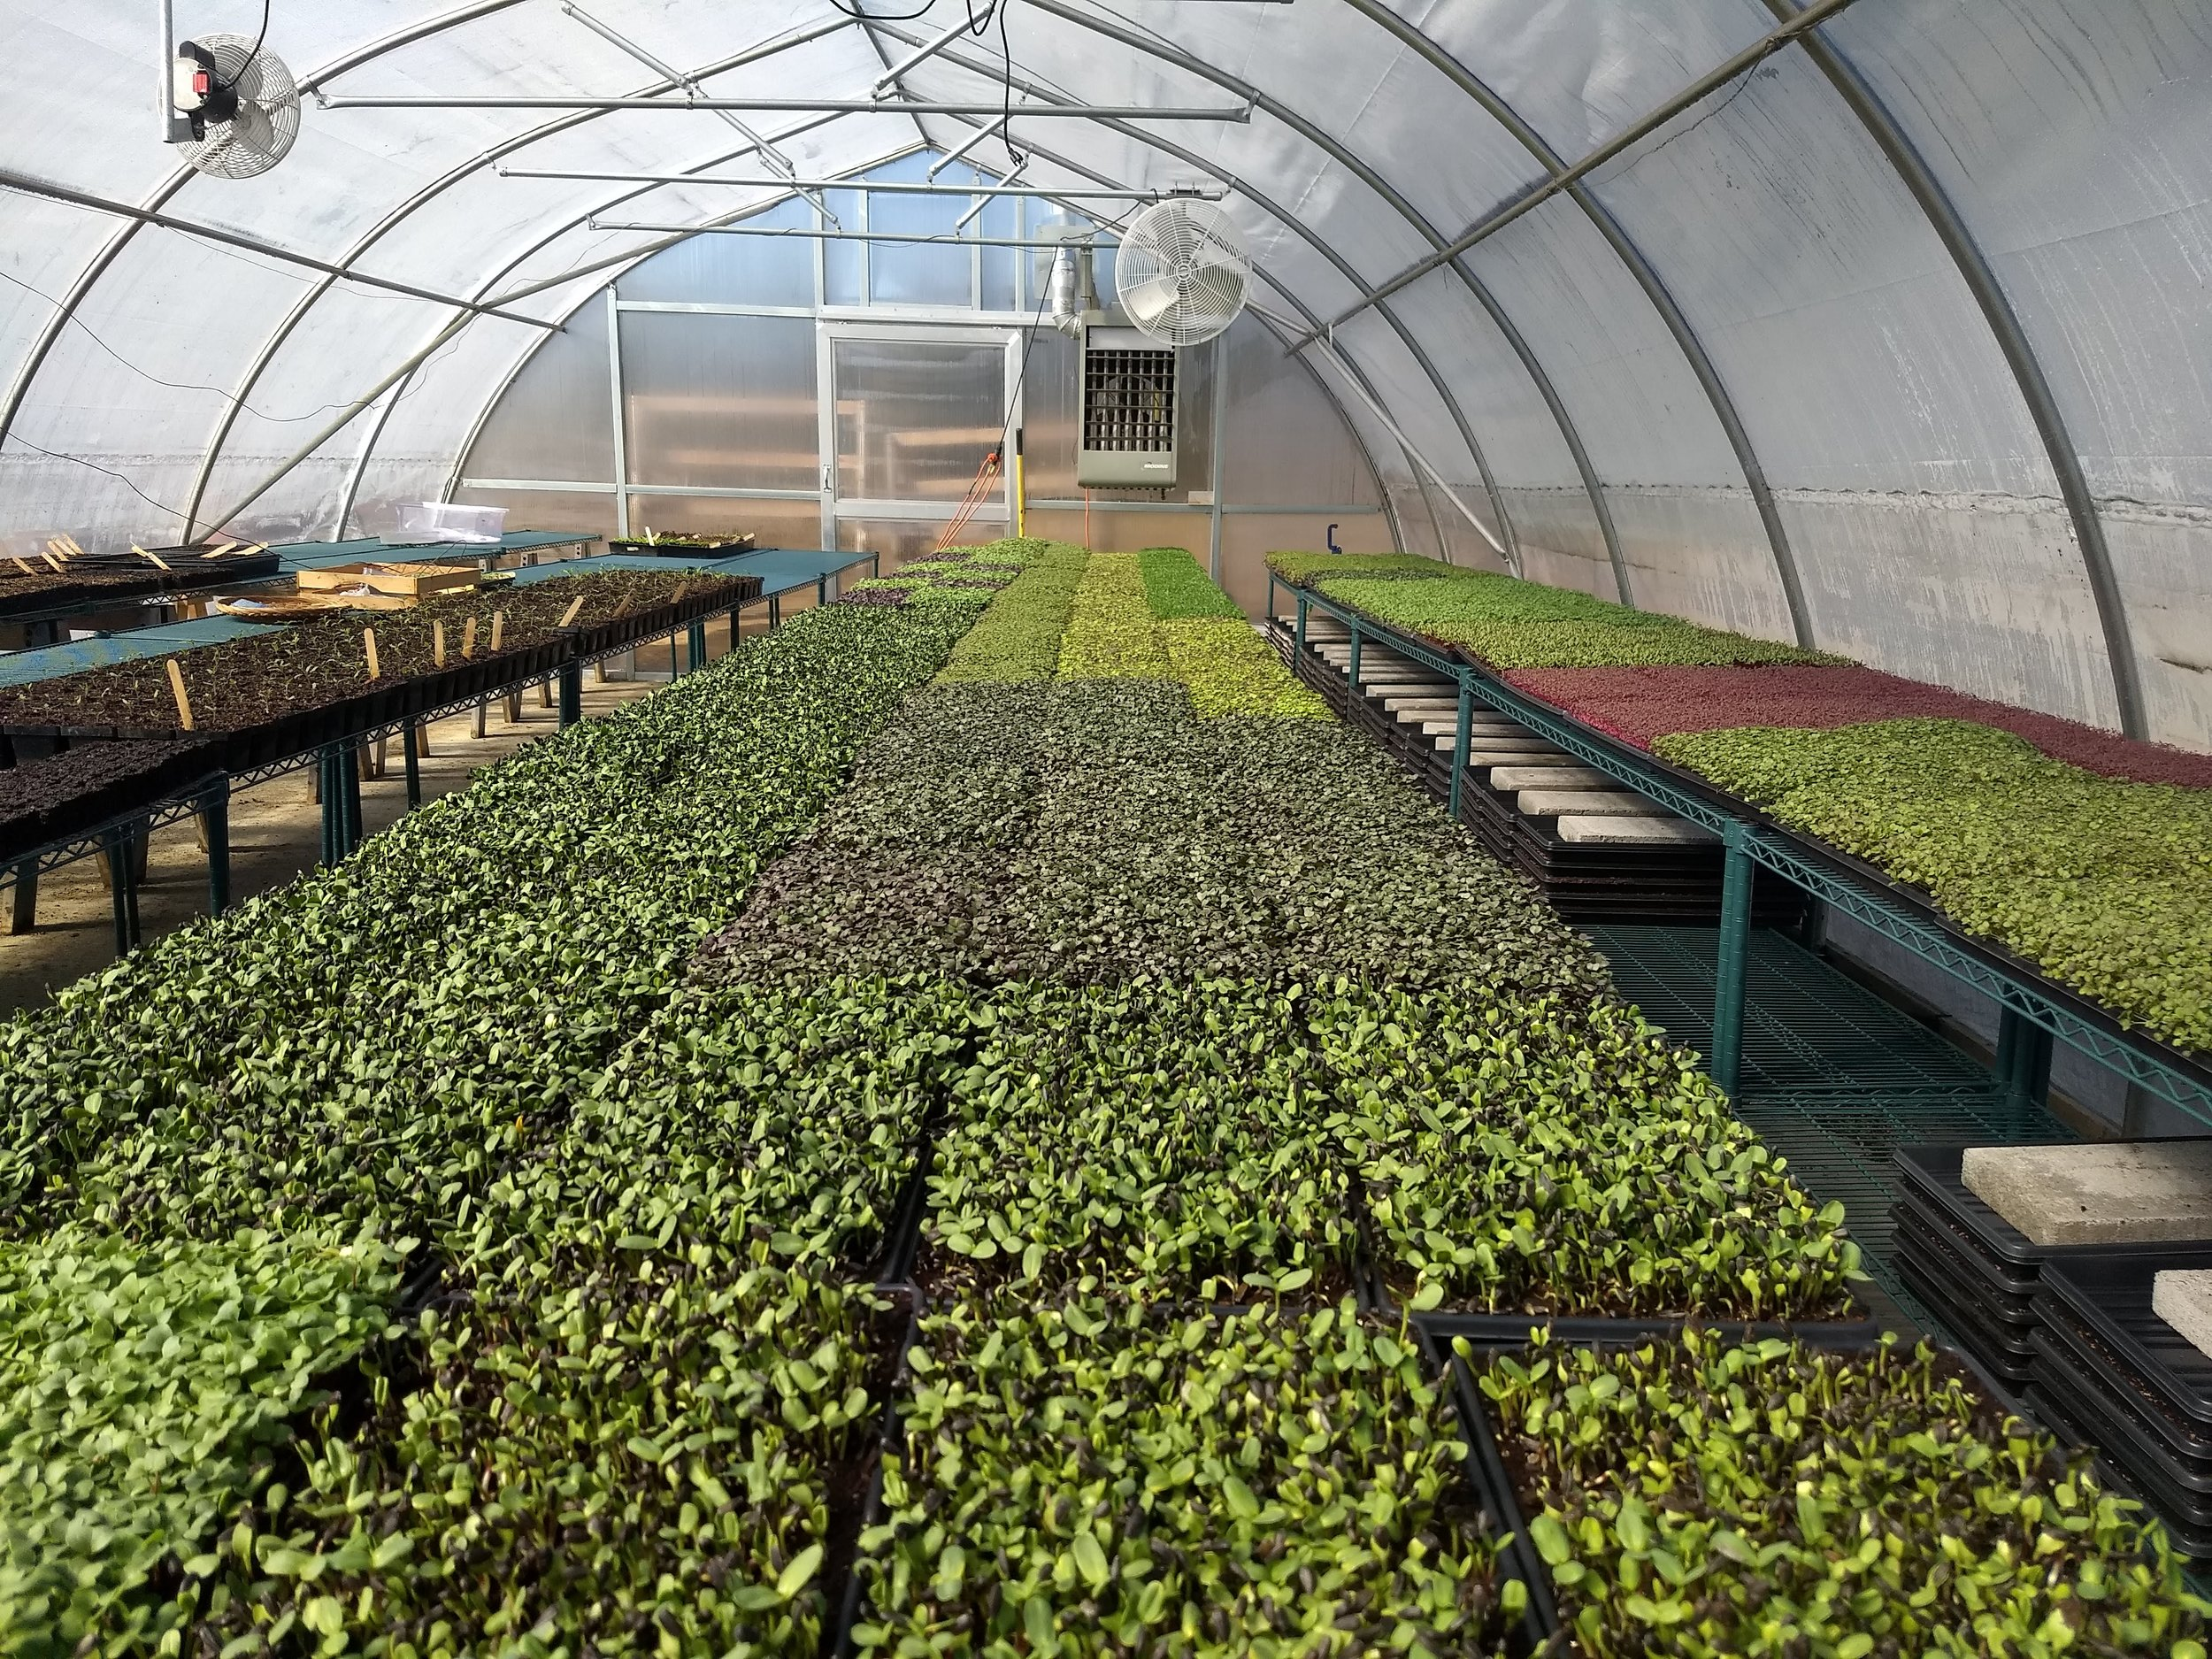 One of our larger greenhouses that we now use for seedlings and micros.